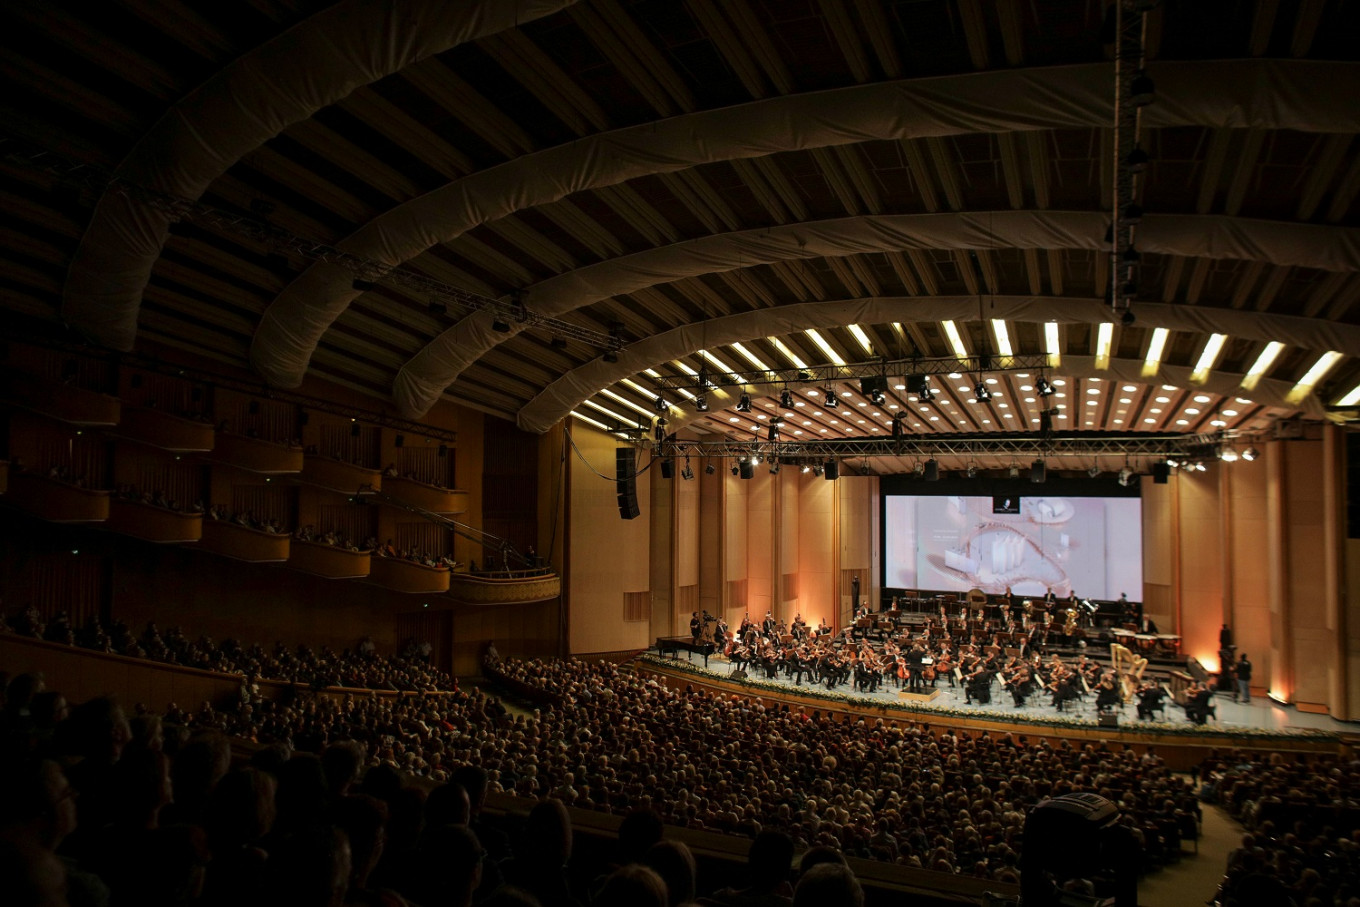 Romania's Enescu music festival thrives in shaky political times